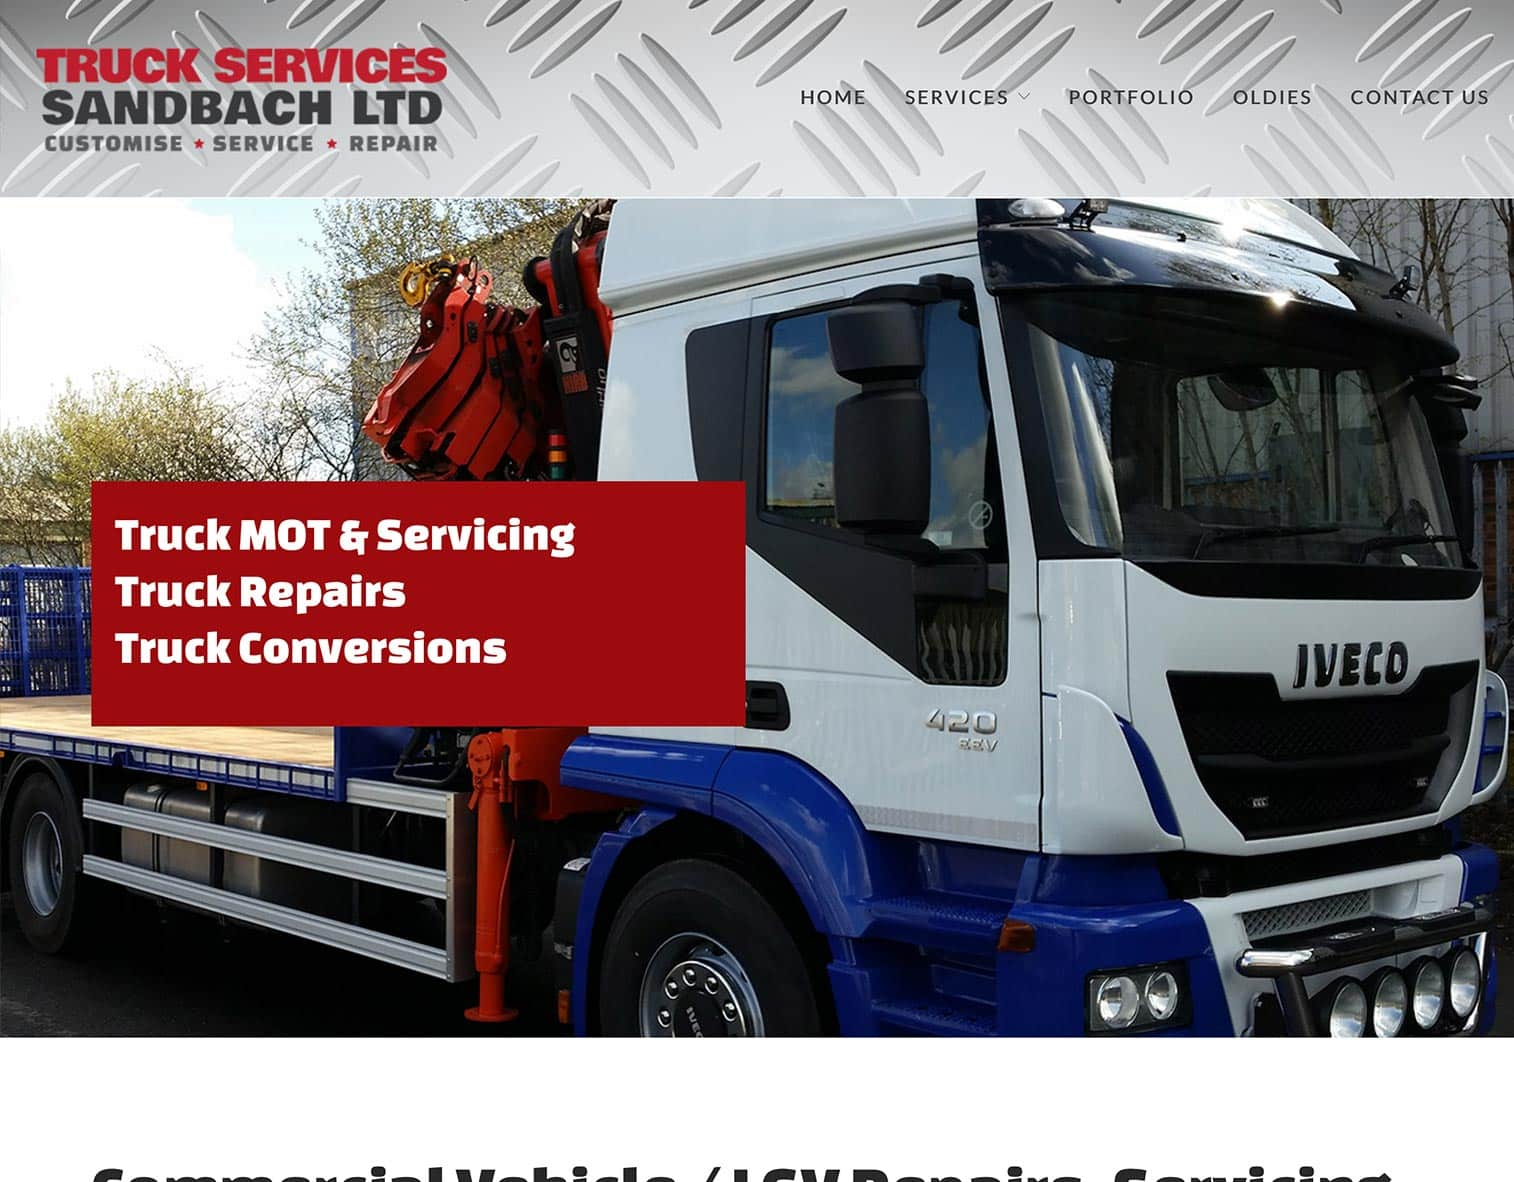 Truck Services Sandbach Website